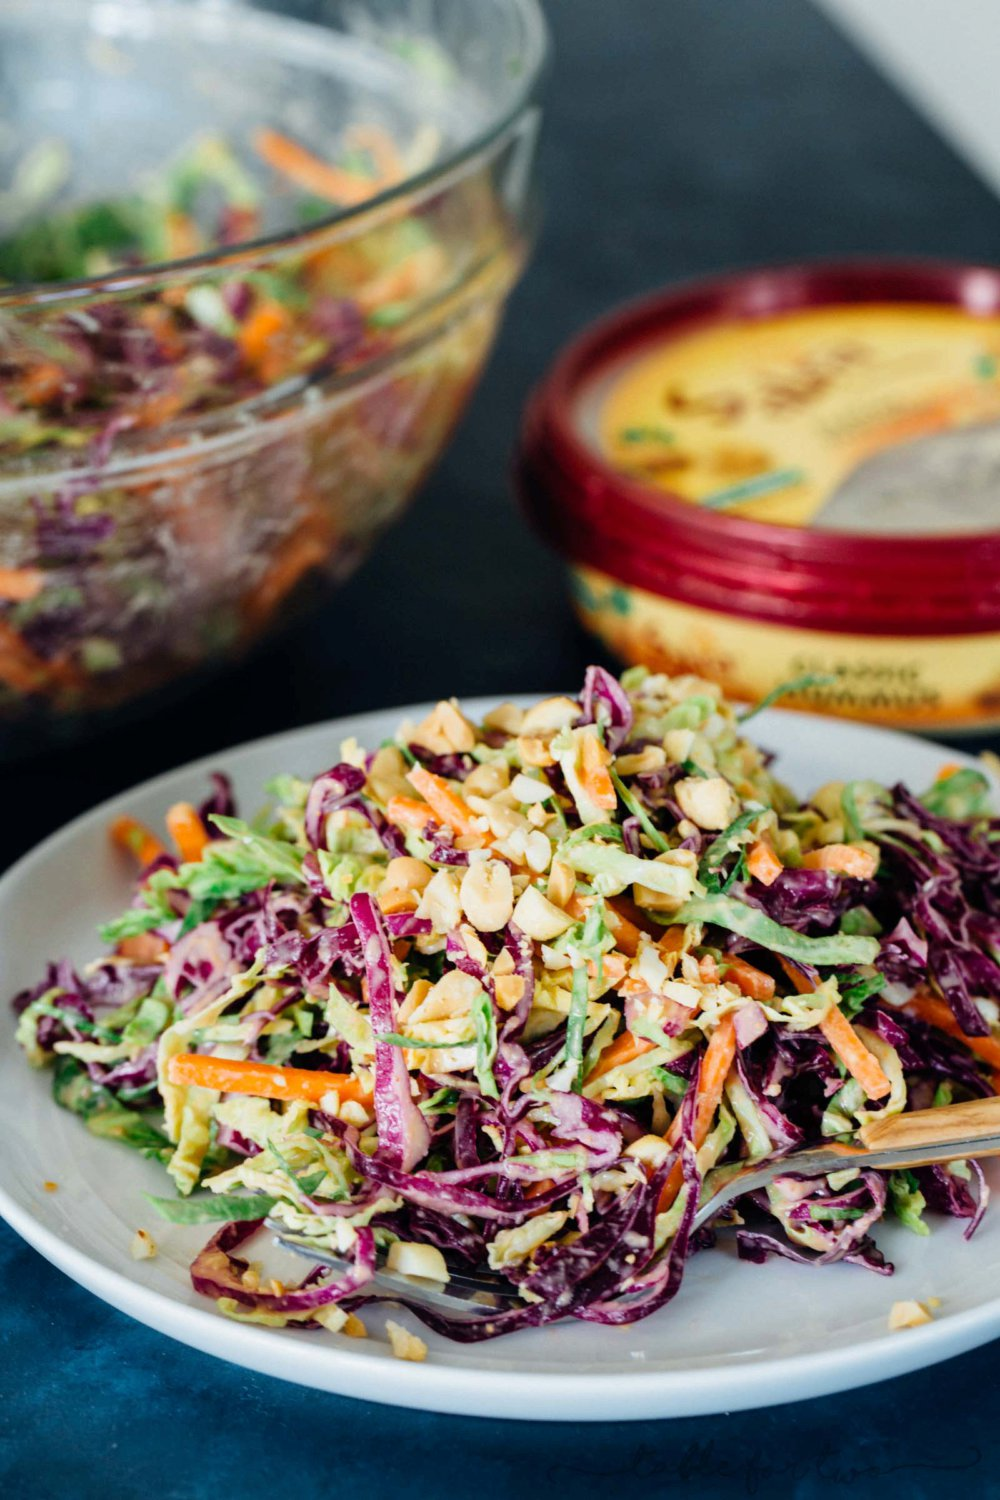 Cabbage Slaw with Creamy Hummus Dressing